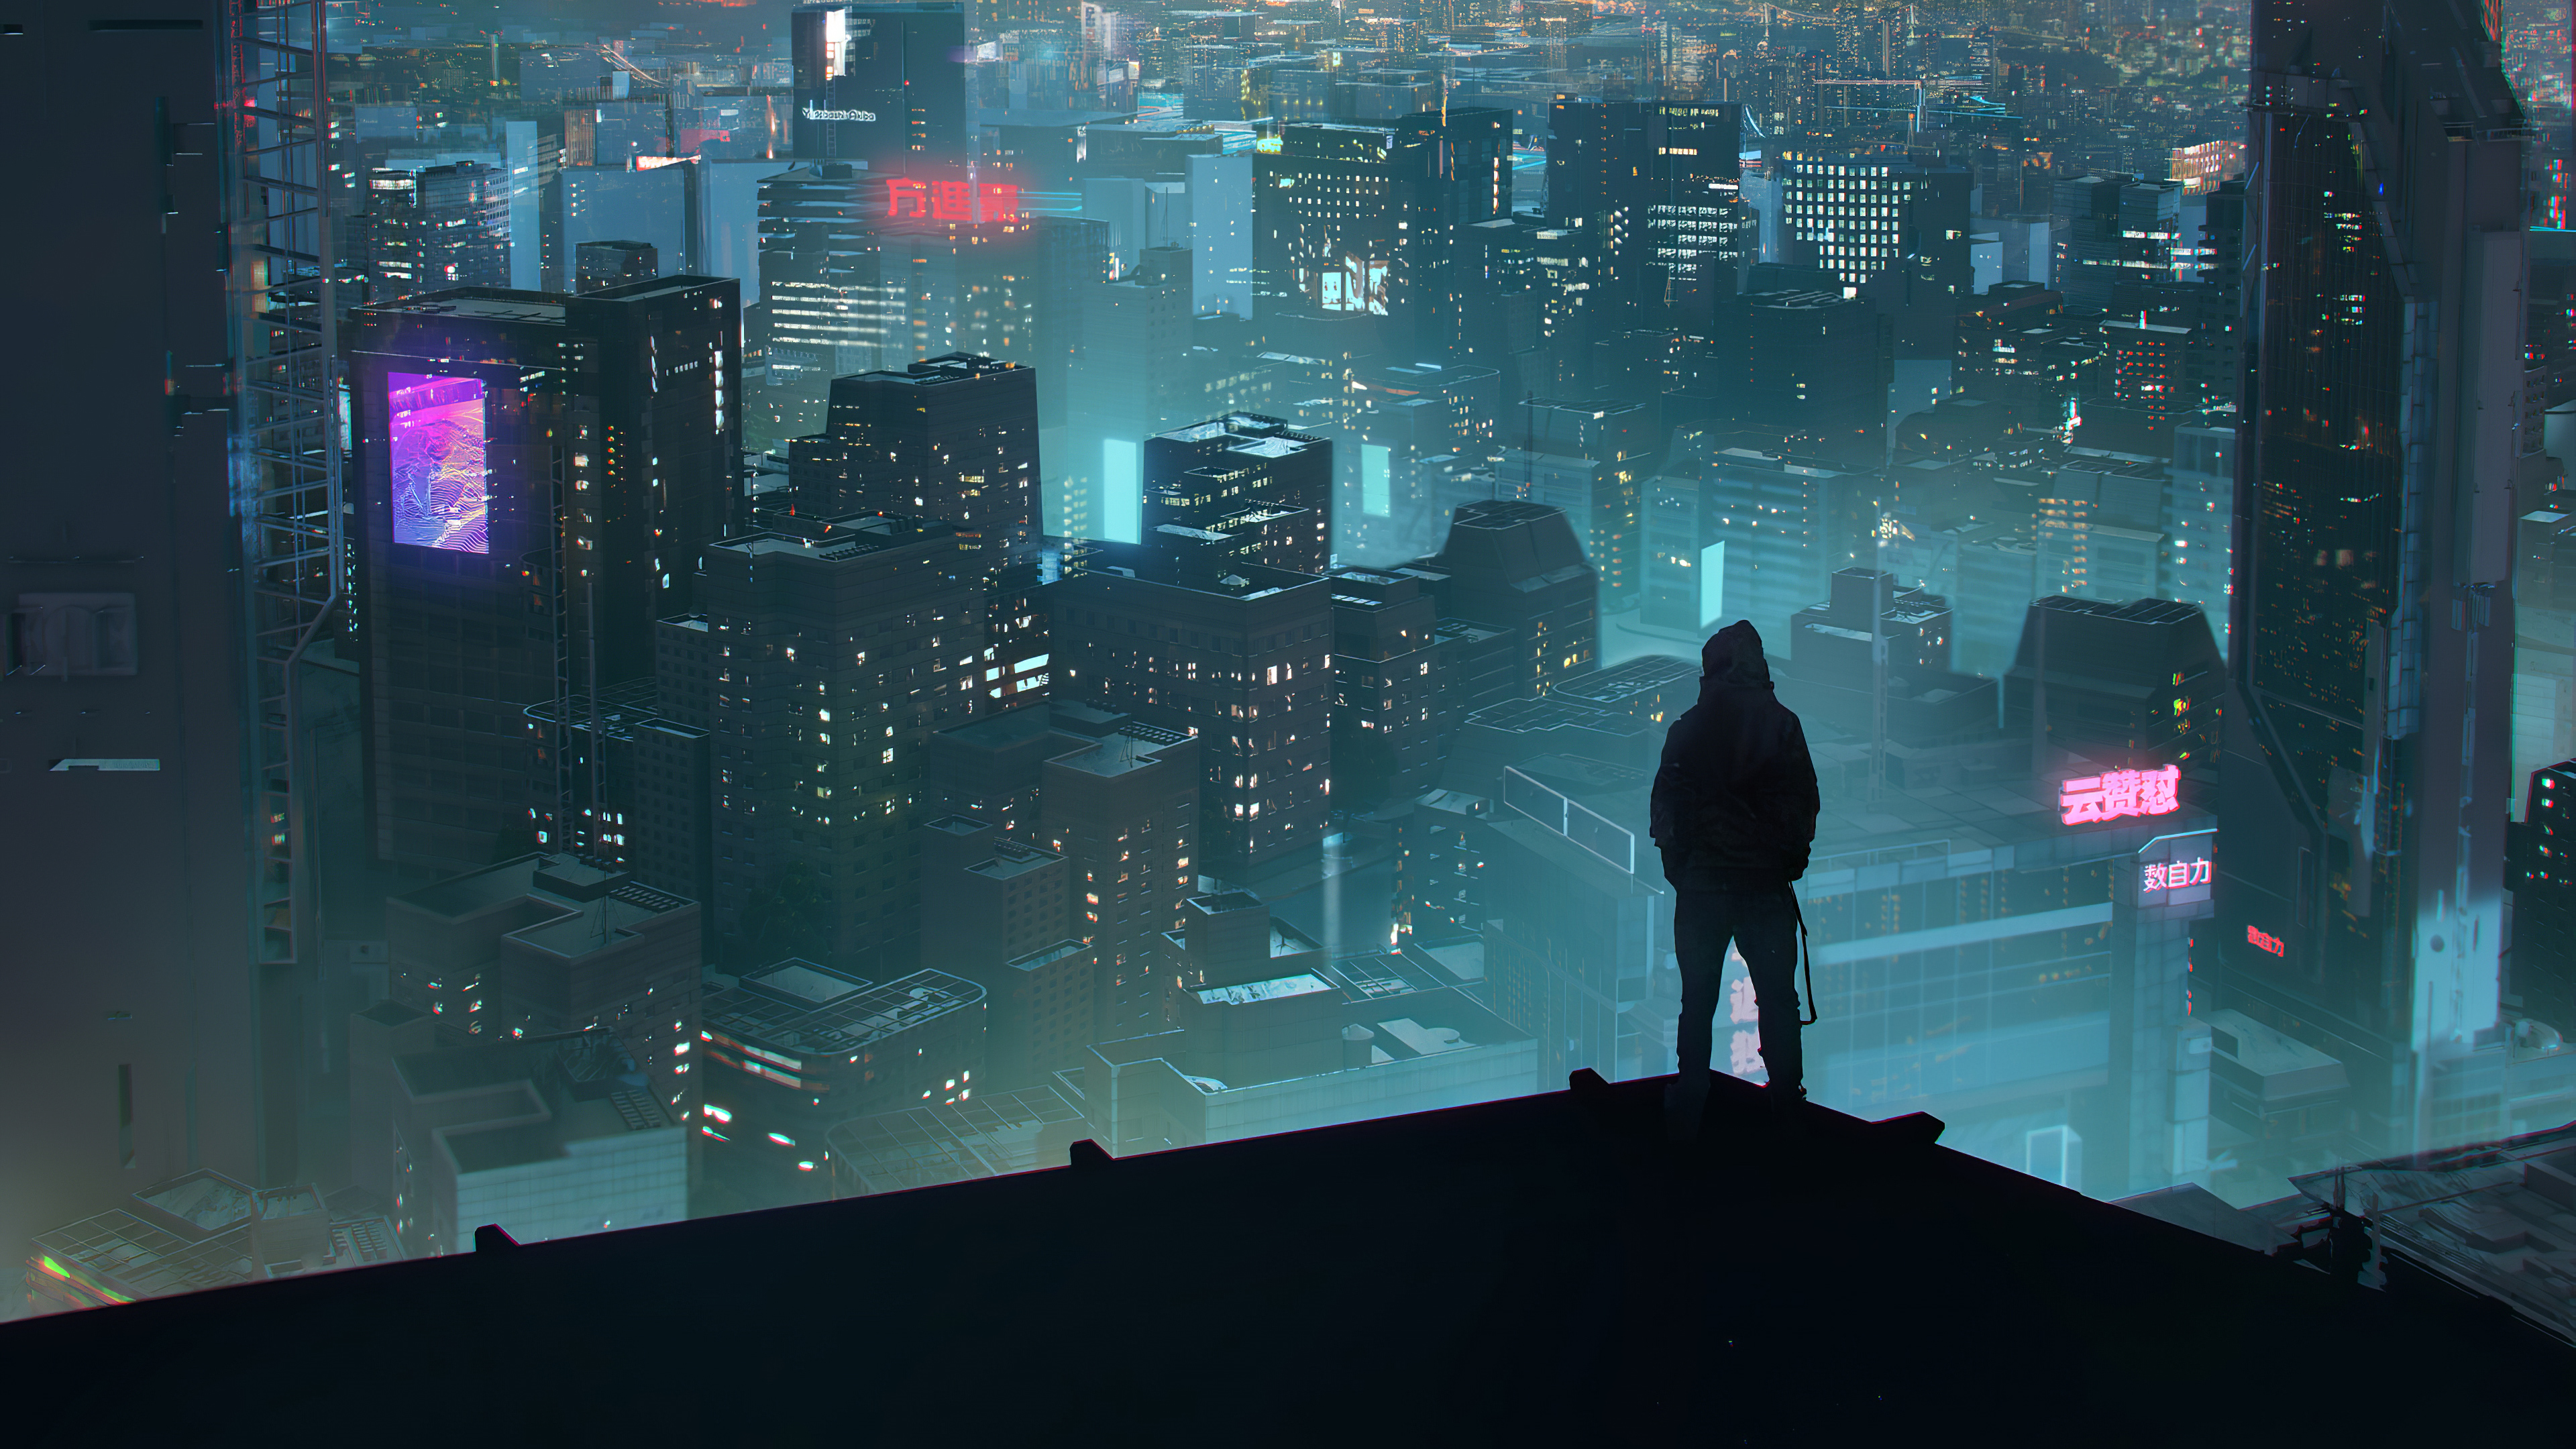 sci fi city future wallpaper sci fi city future wallpaper